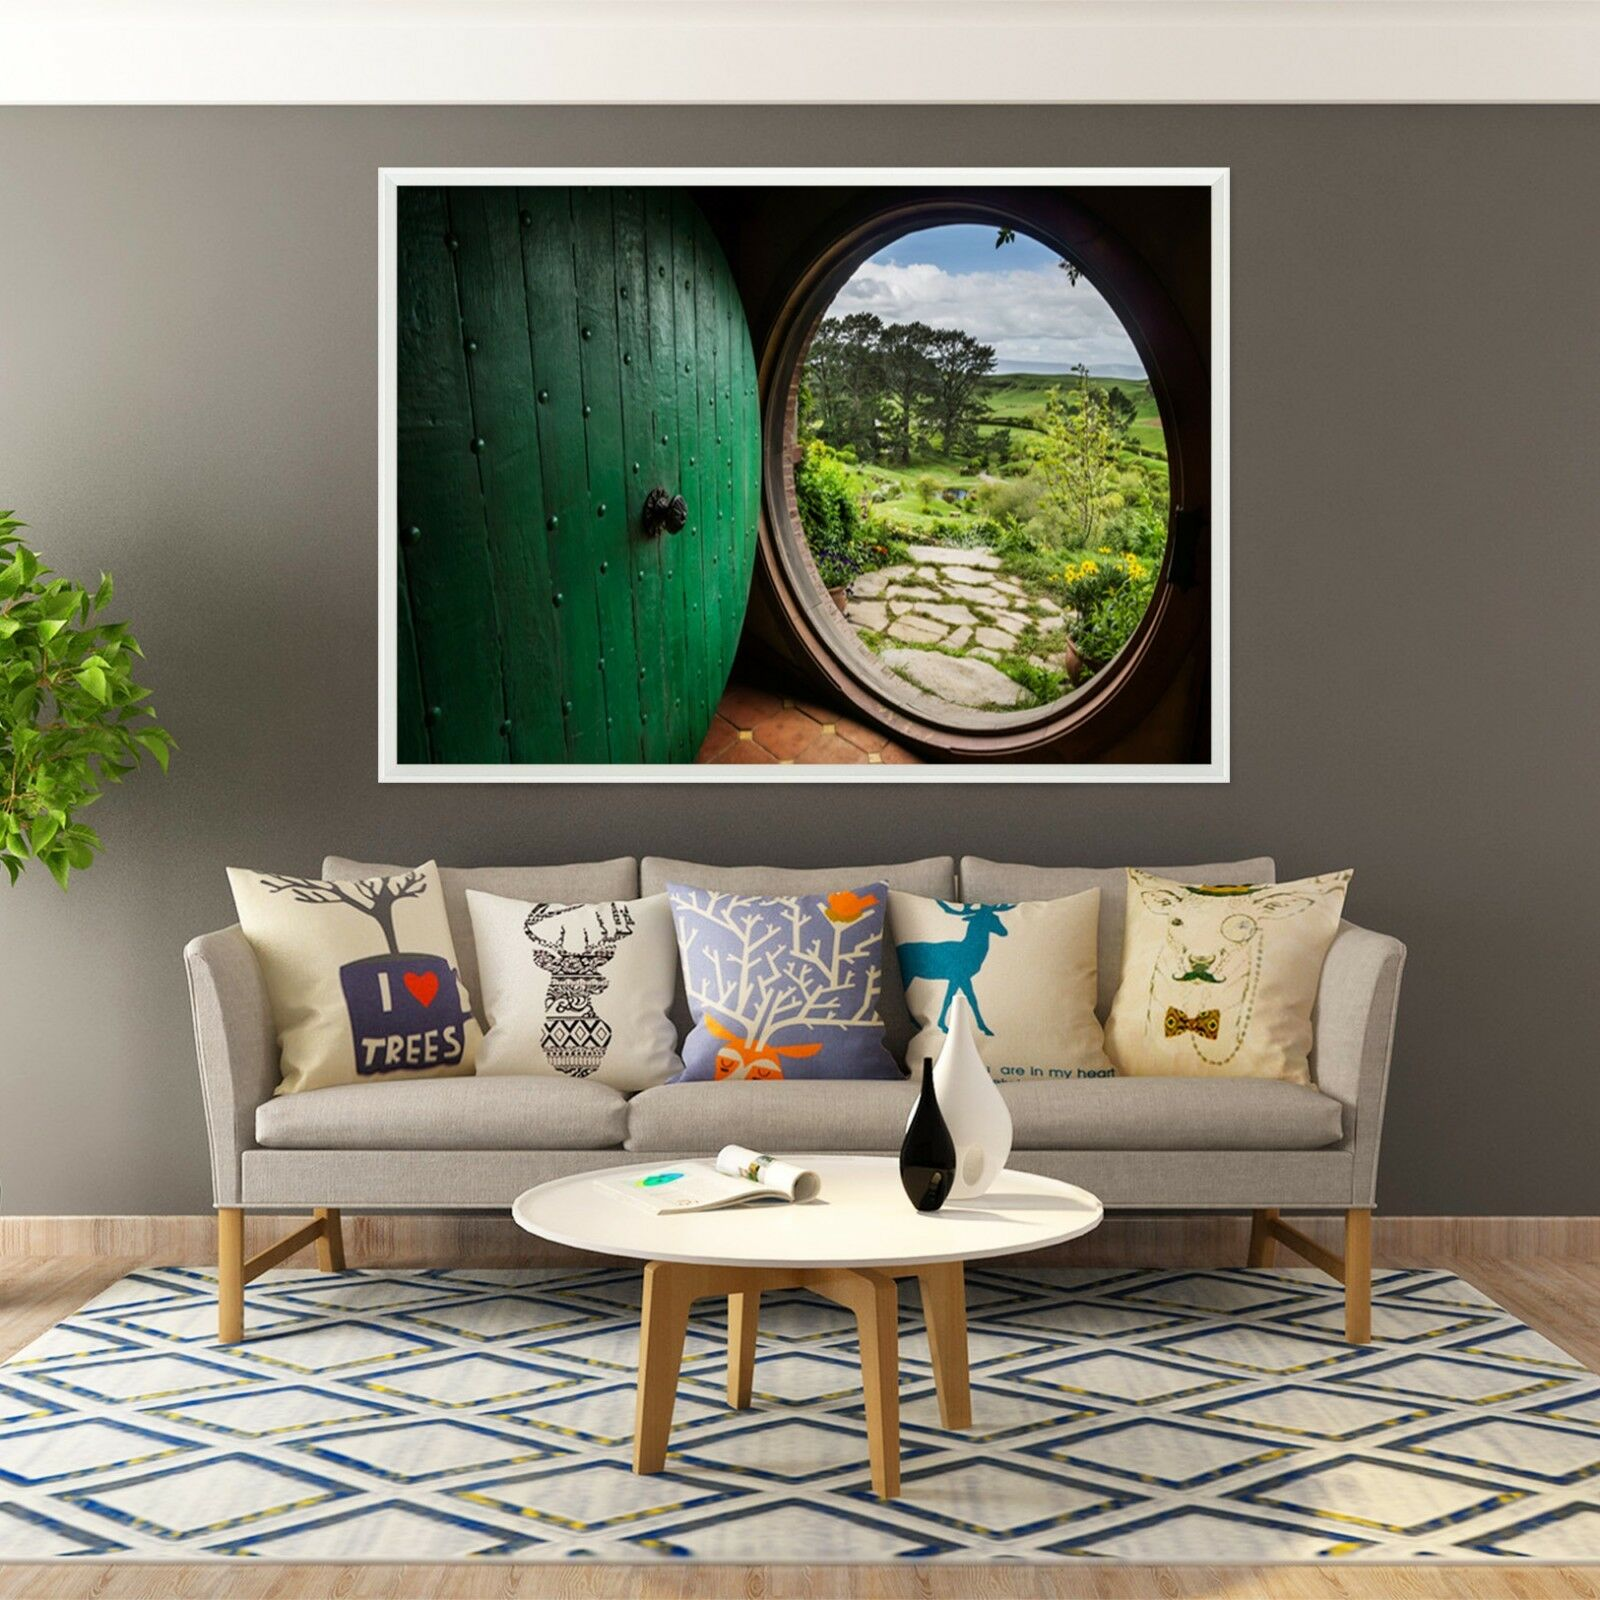 3D Round Door 67 Framed Poster Home Decor Print Painting Art AJ WALLPAPER